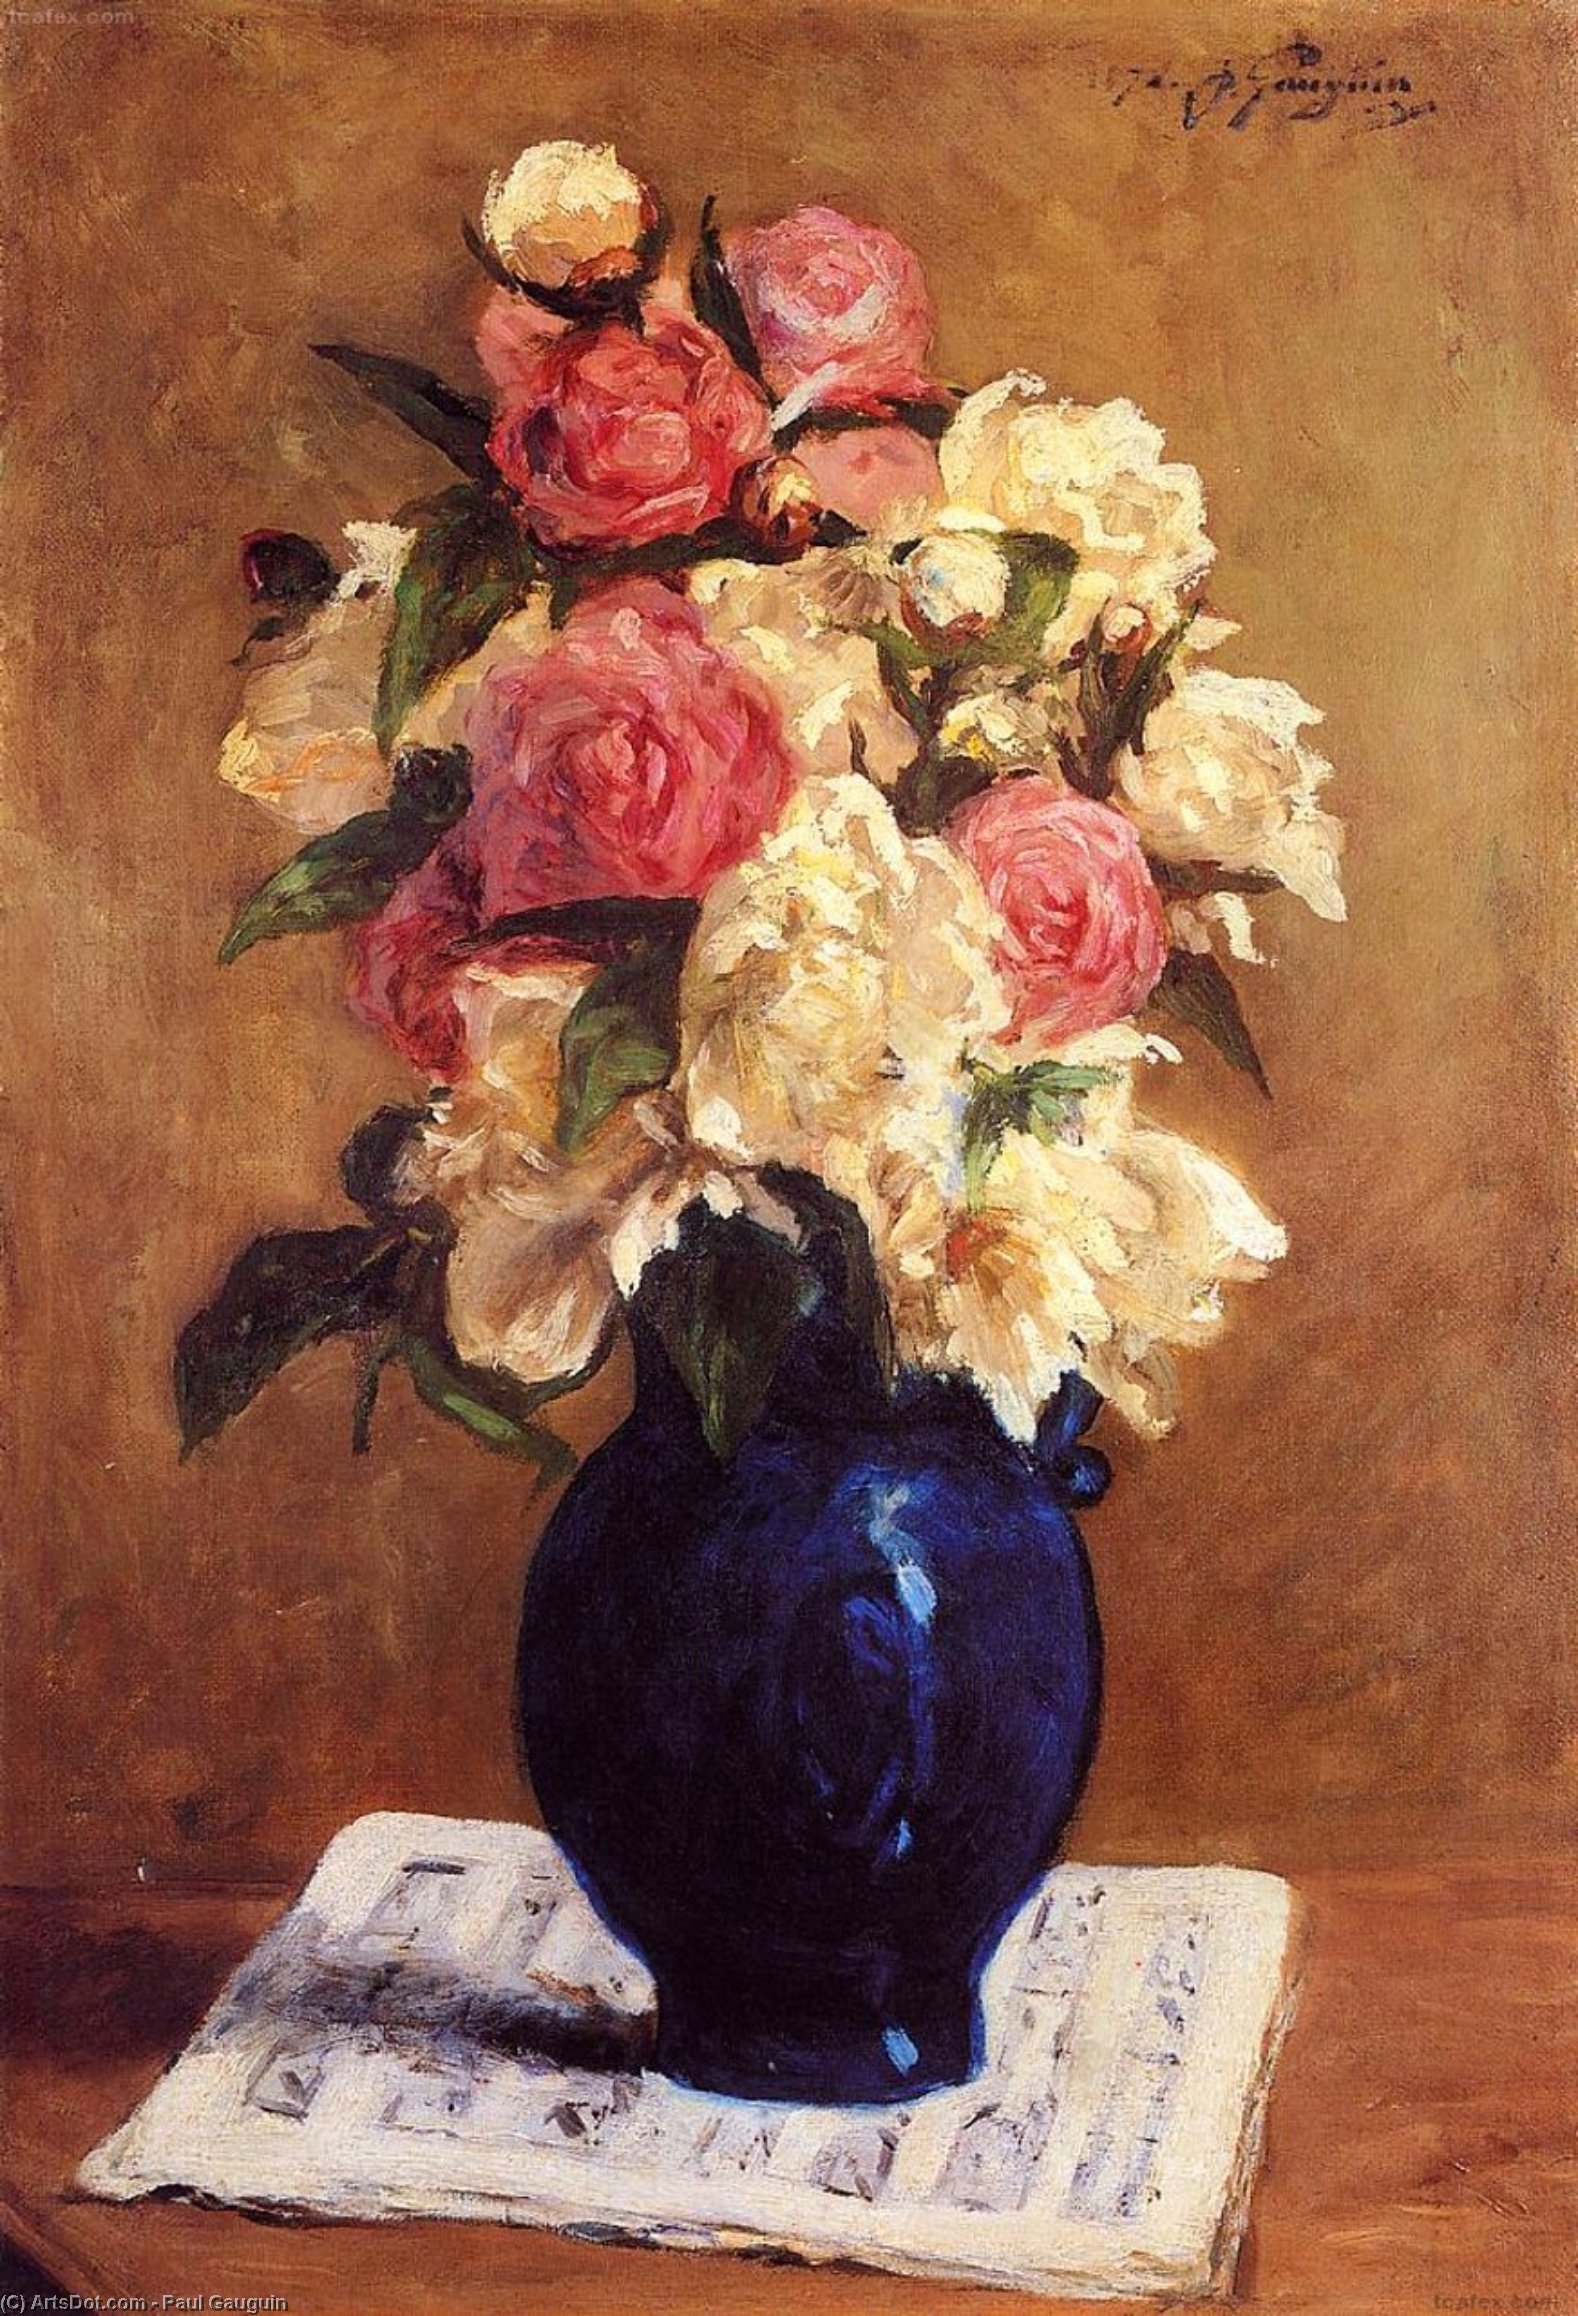 Wikioo.org - The Encyclopedia of Fine Arts - Painting, Artwork by Paul Gauguin - Boquet of Peonies on a Musical Score